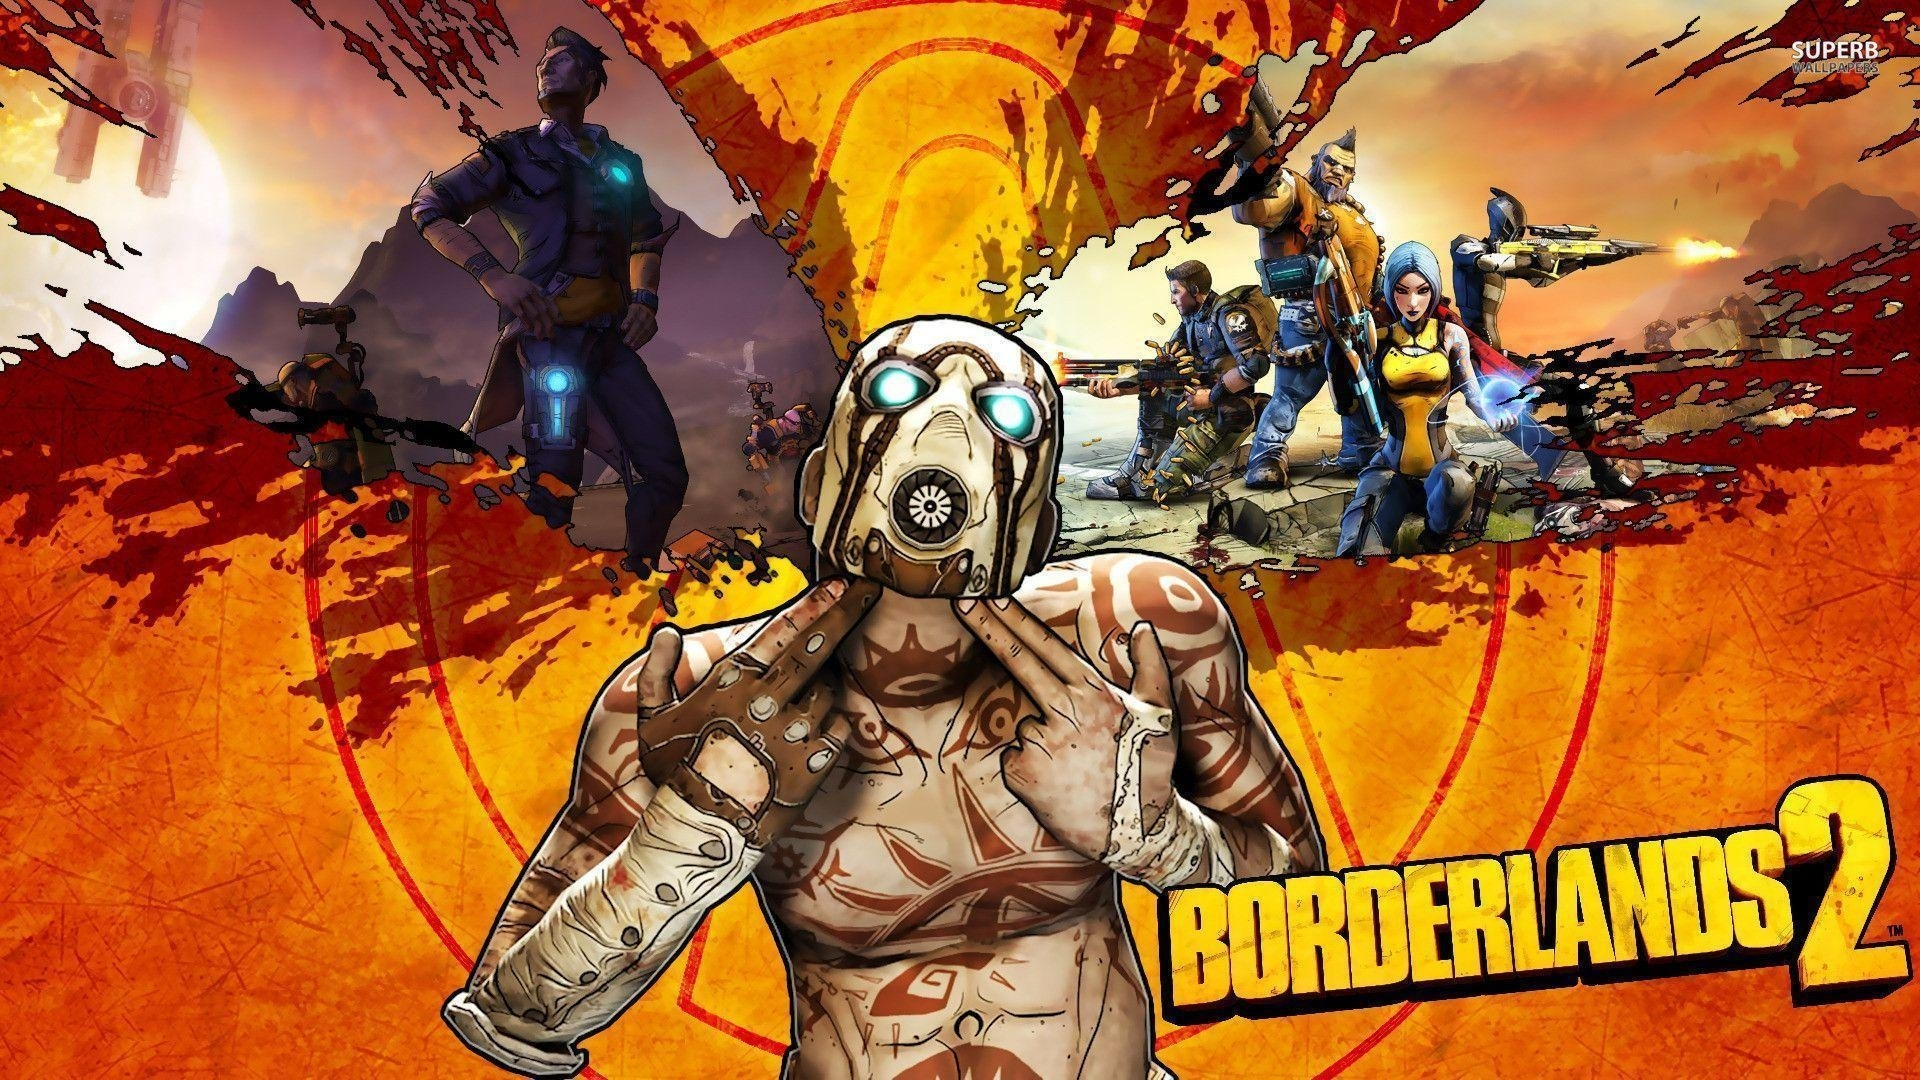 borderlands 2 wallpapers 1920x1080 - wallpaper cave